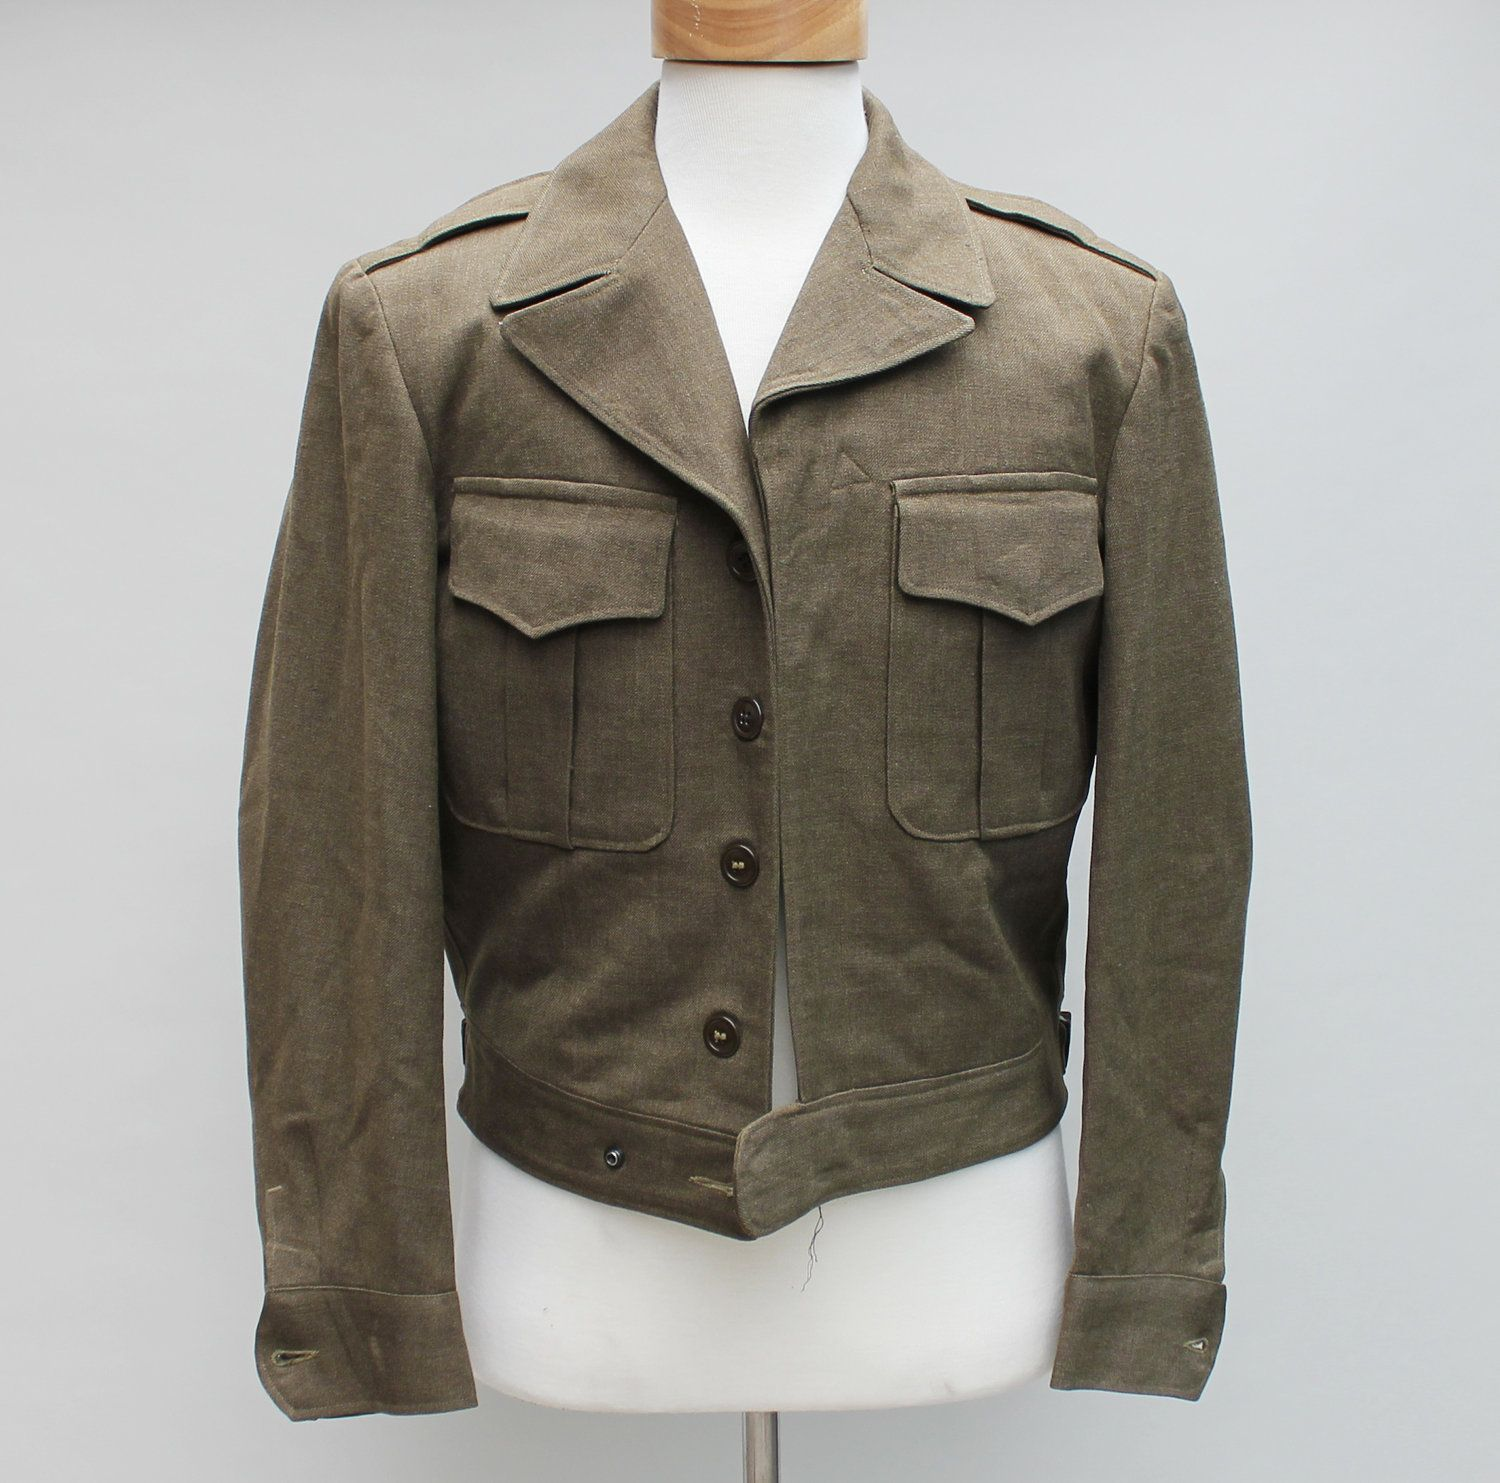 40s Vintage Men's Cropped Wool Military Jacket - MEDIUM. $39.00 ...